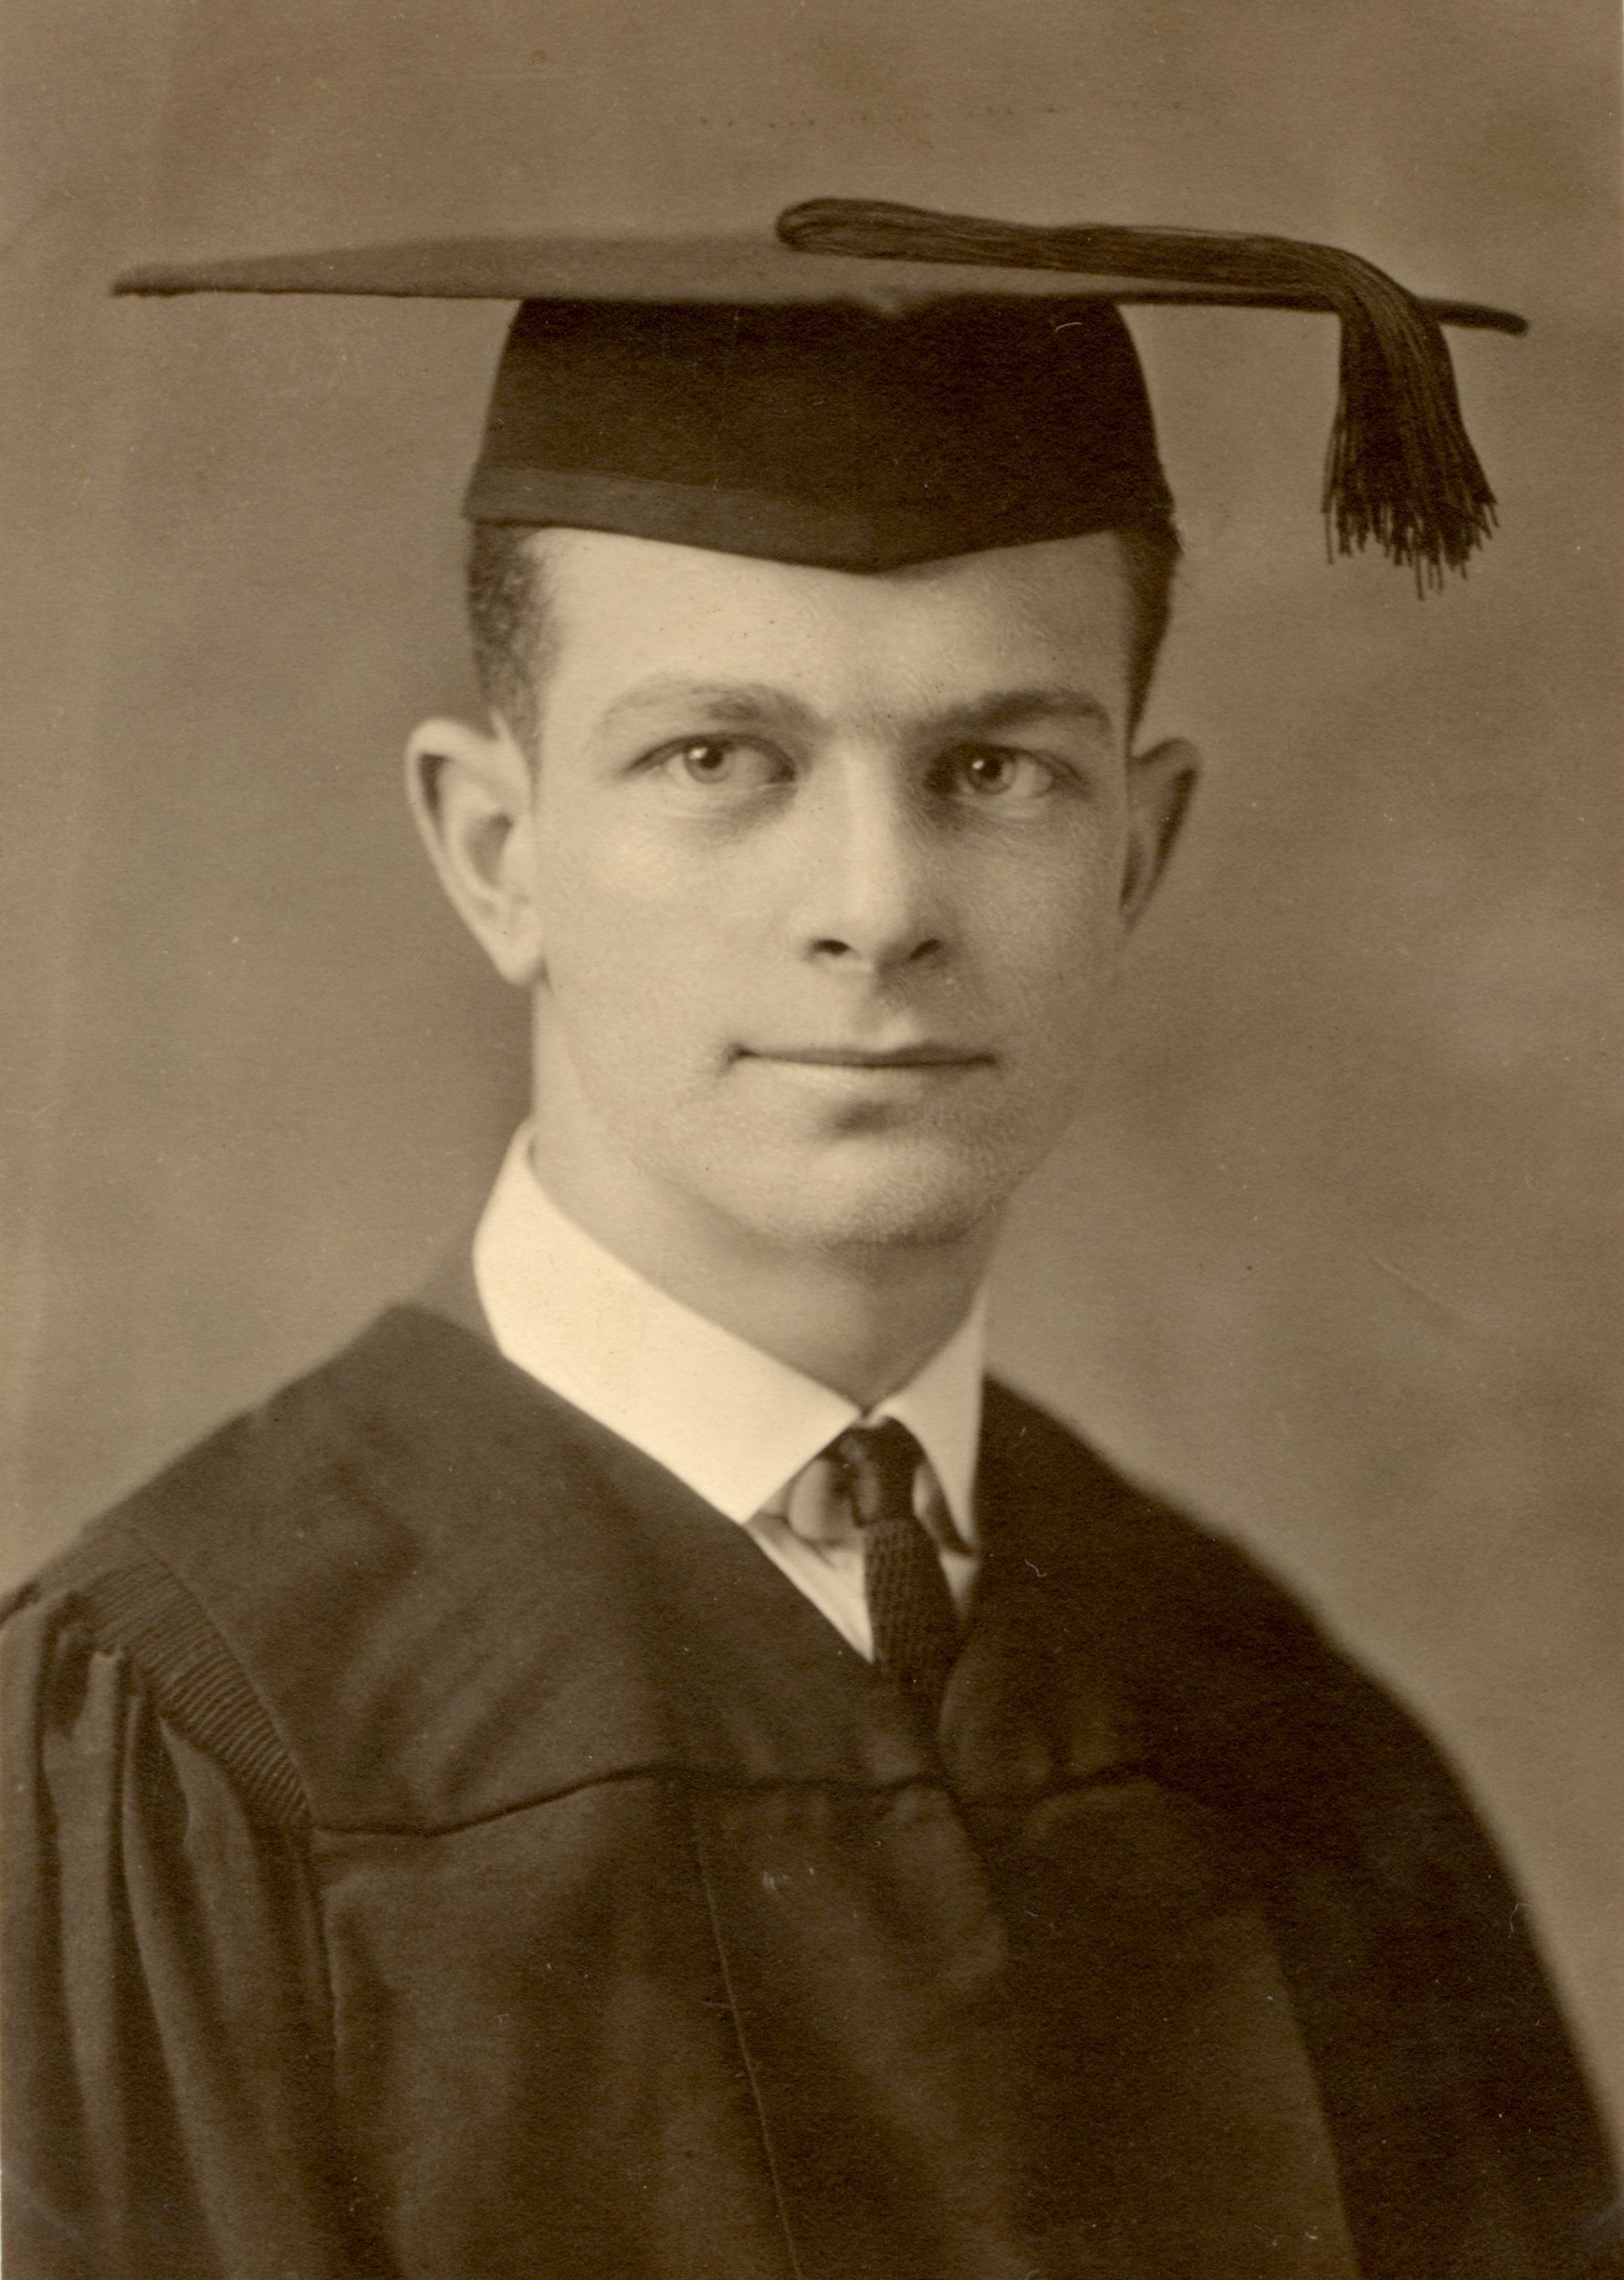 http://upload.wikimedia.org/wikipedia/commons/c/ca/LinusPaulingGraduation1922.jpg